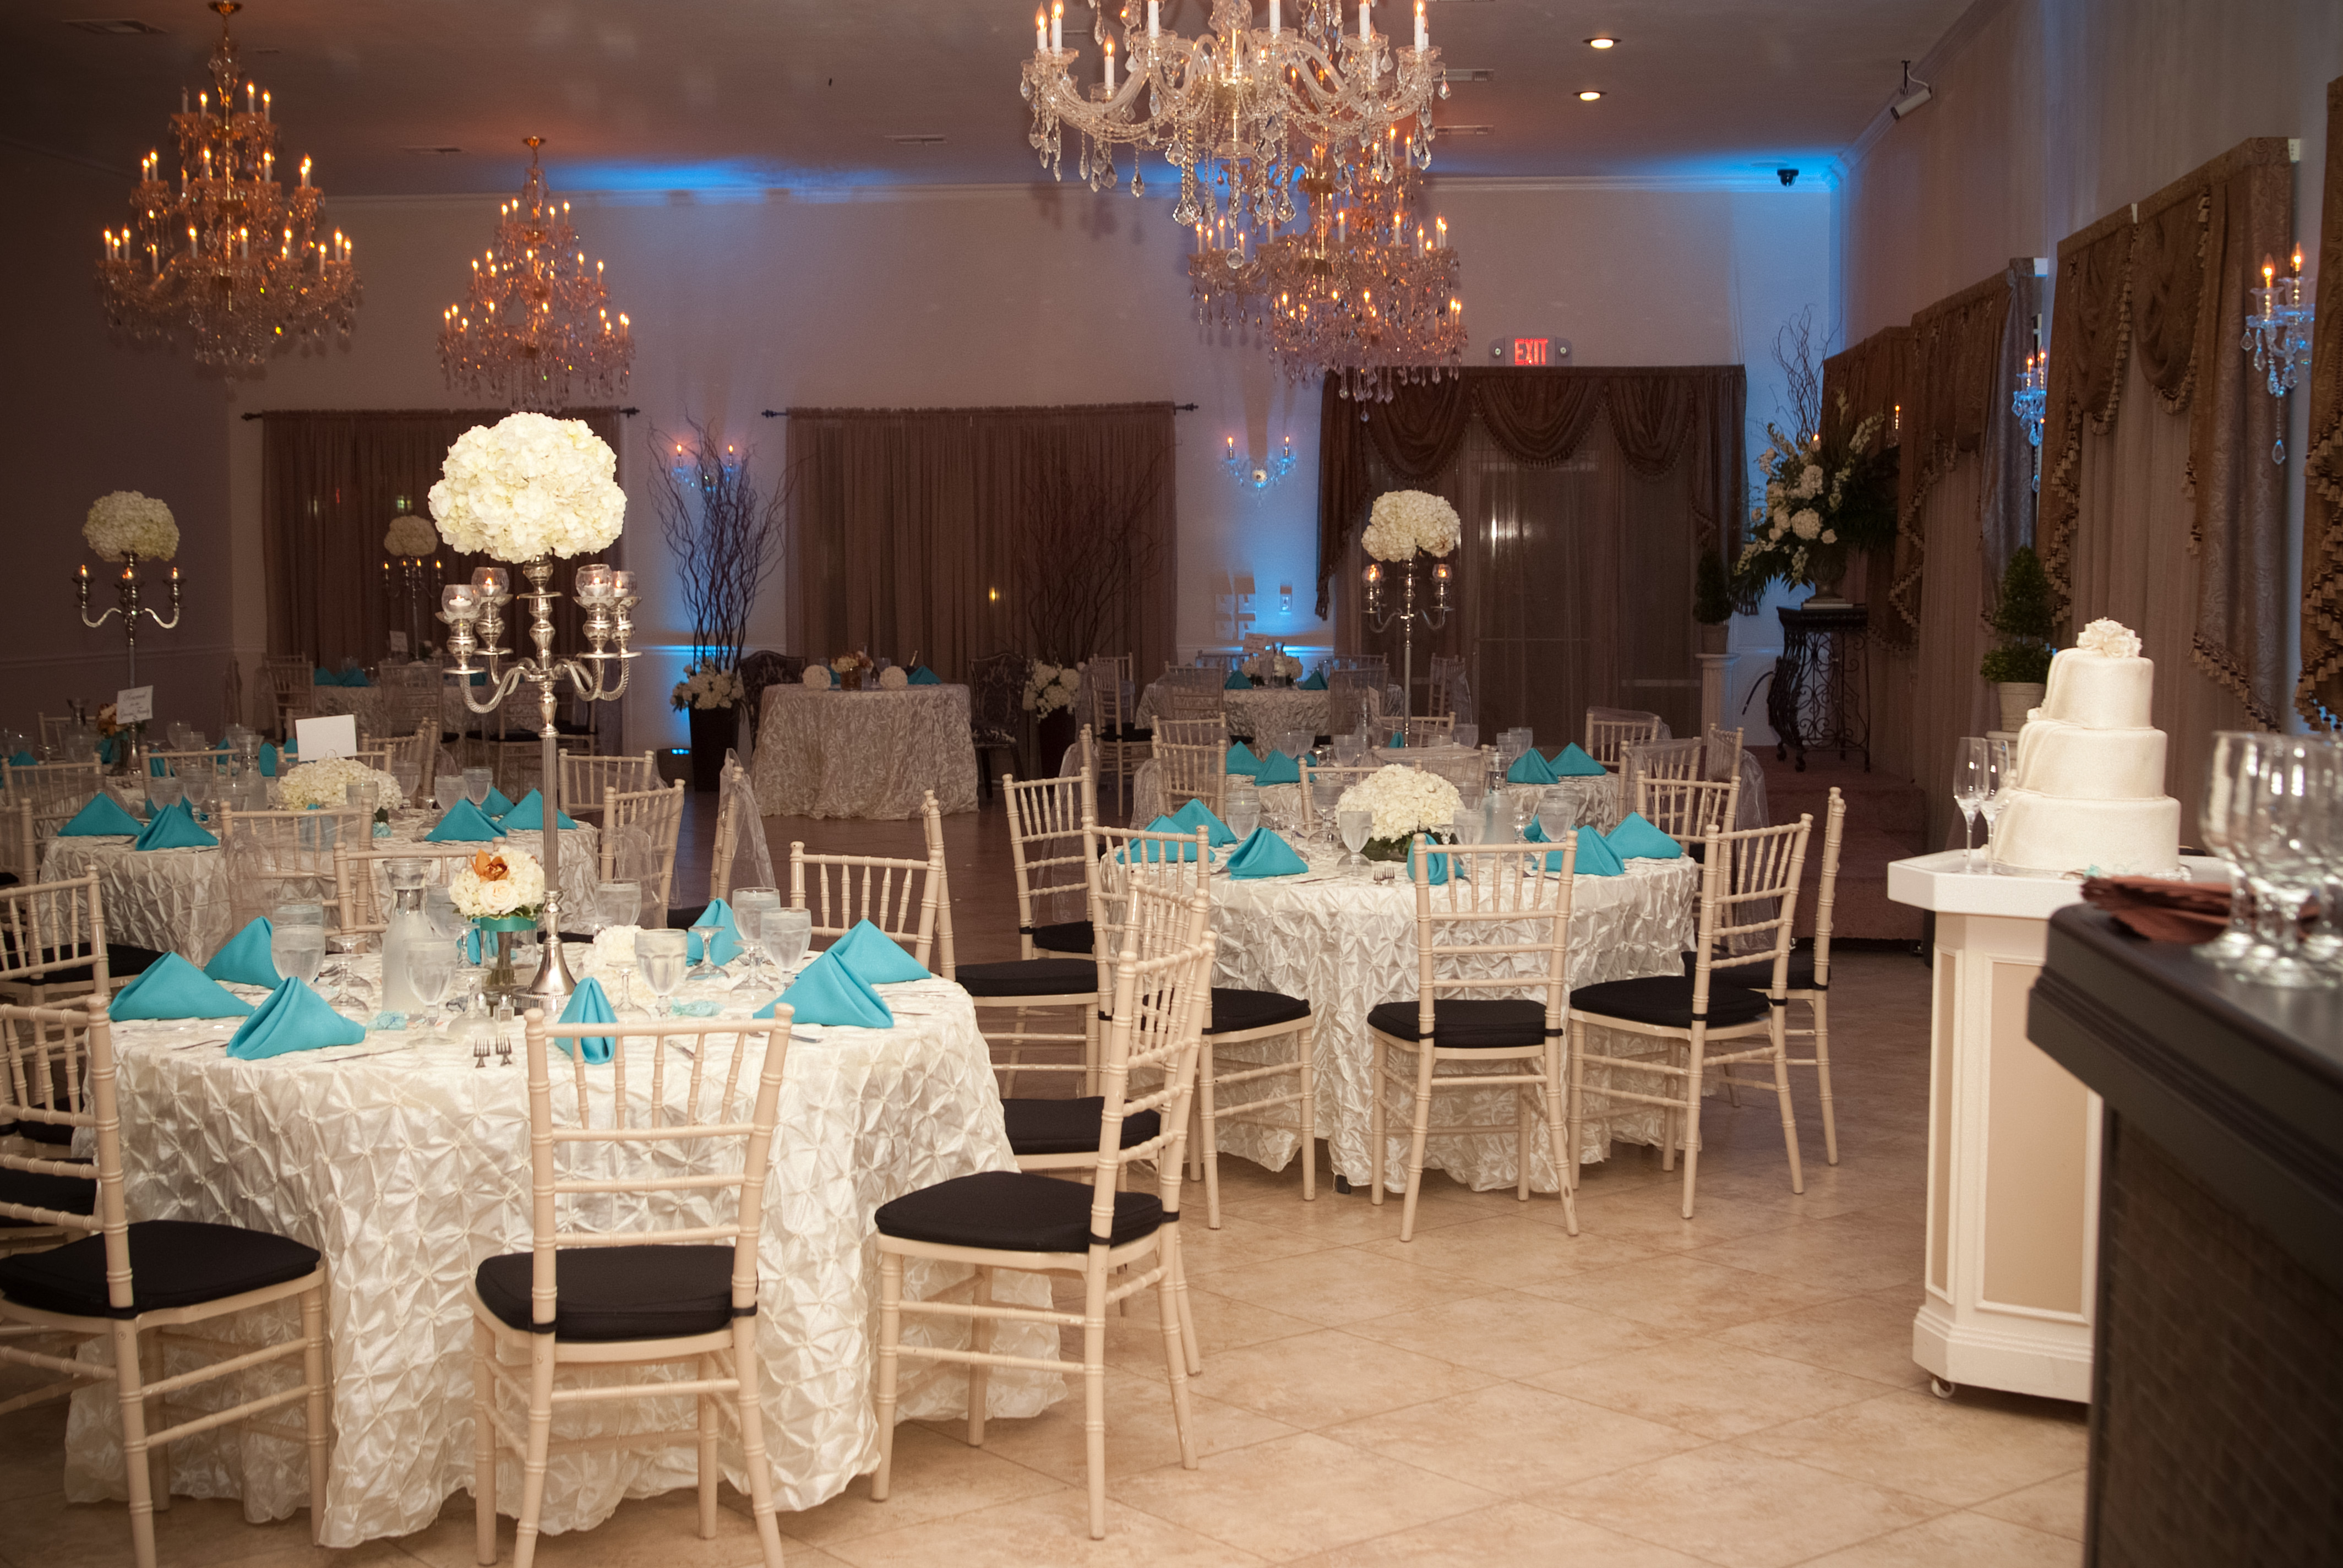 Feragne Villa Weddding Event Venue Photo